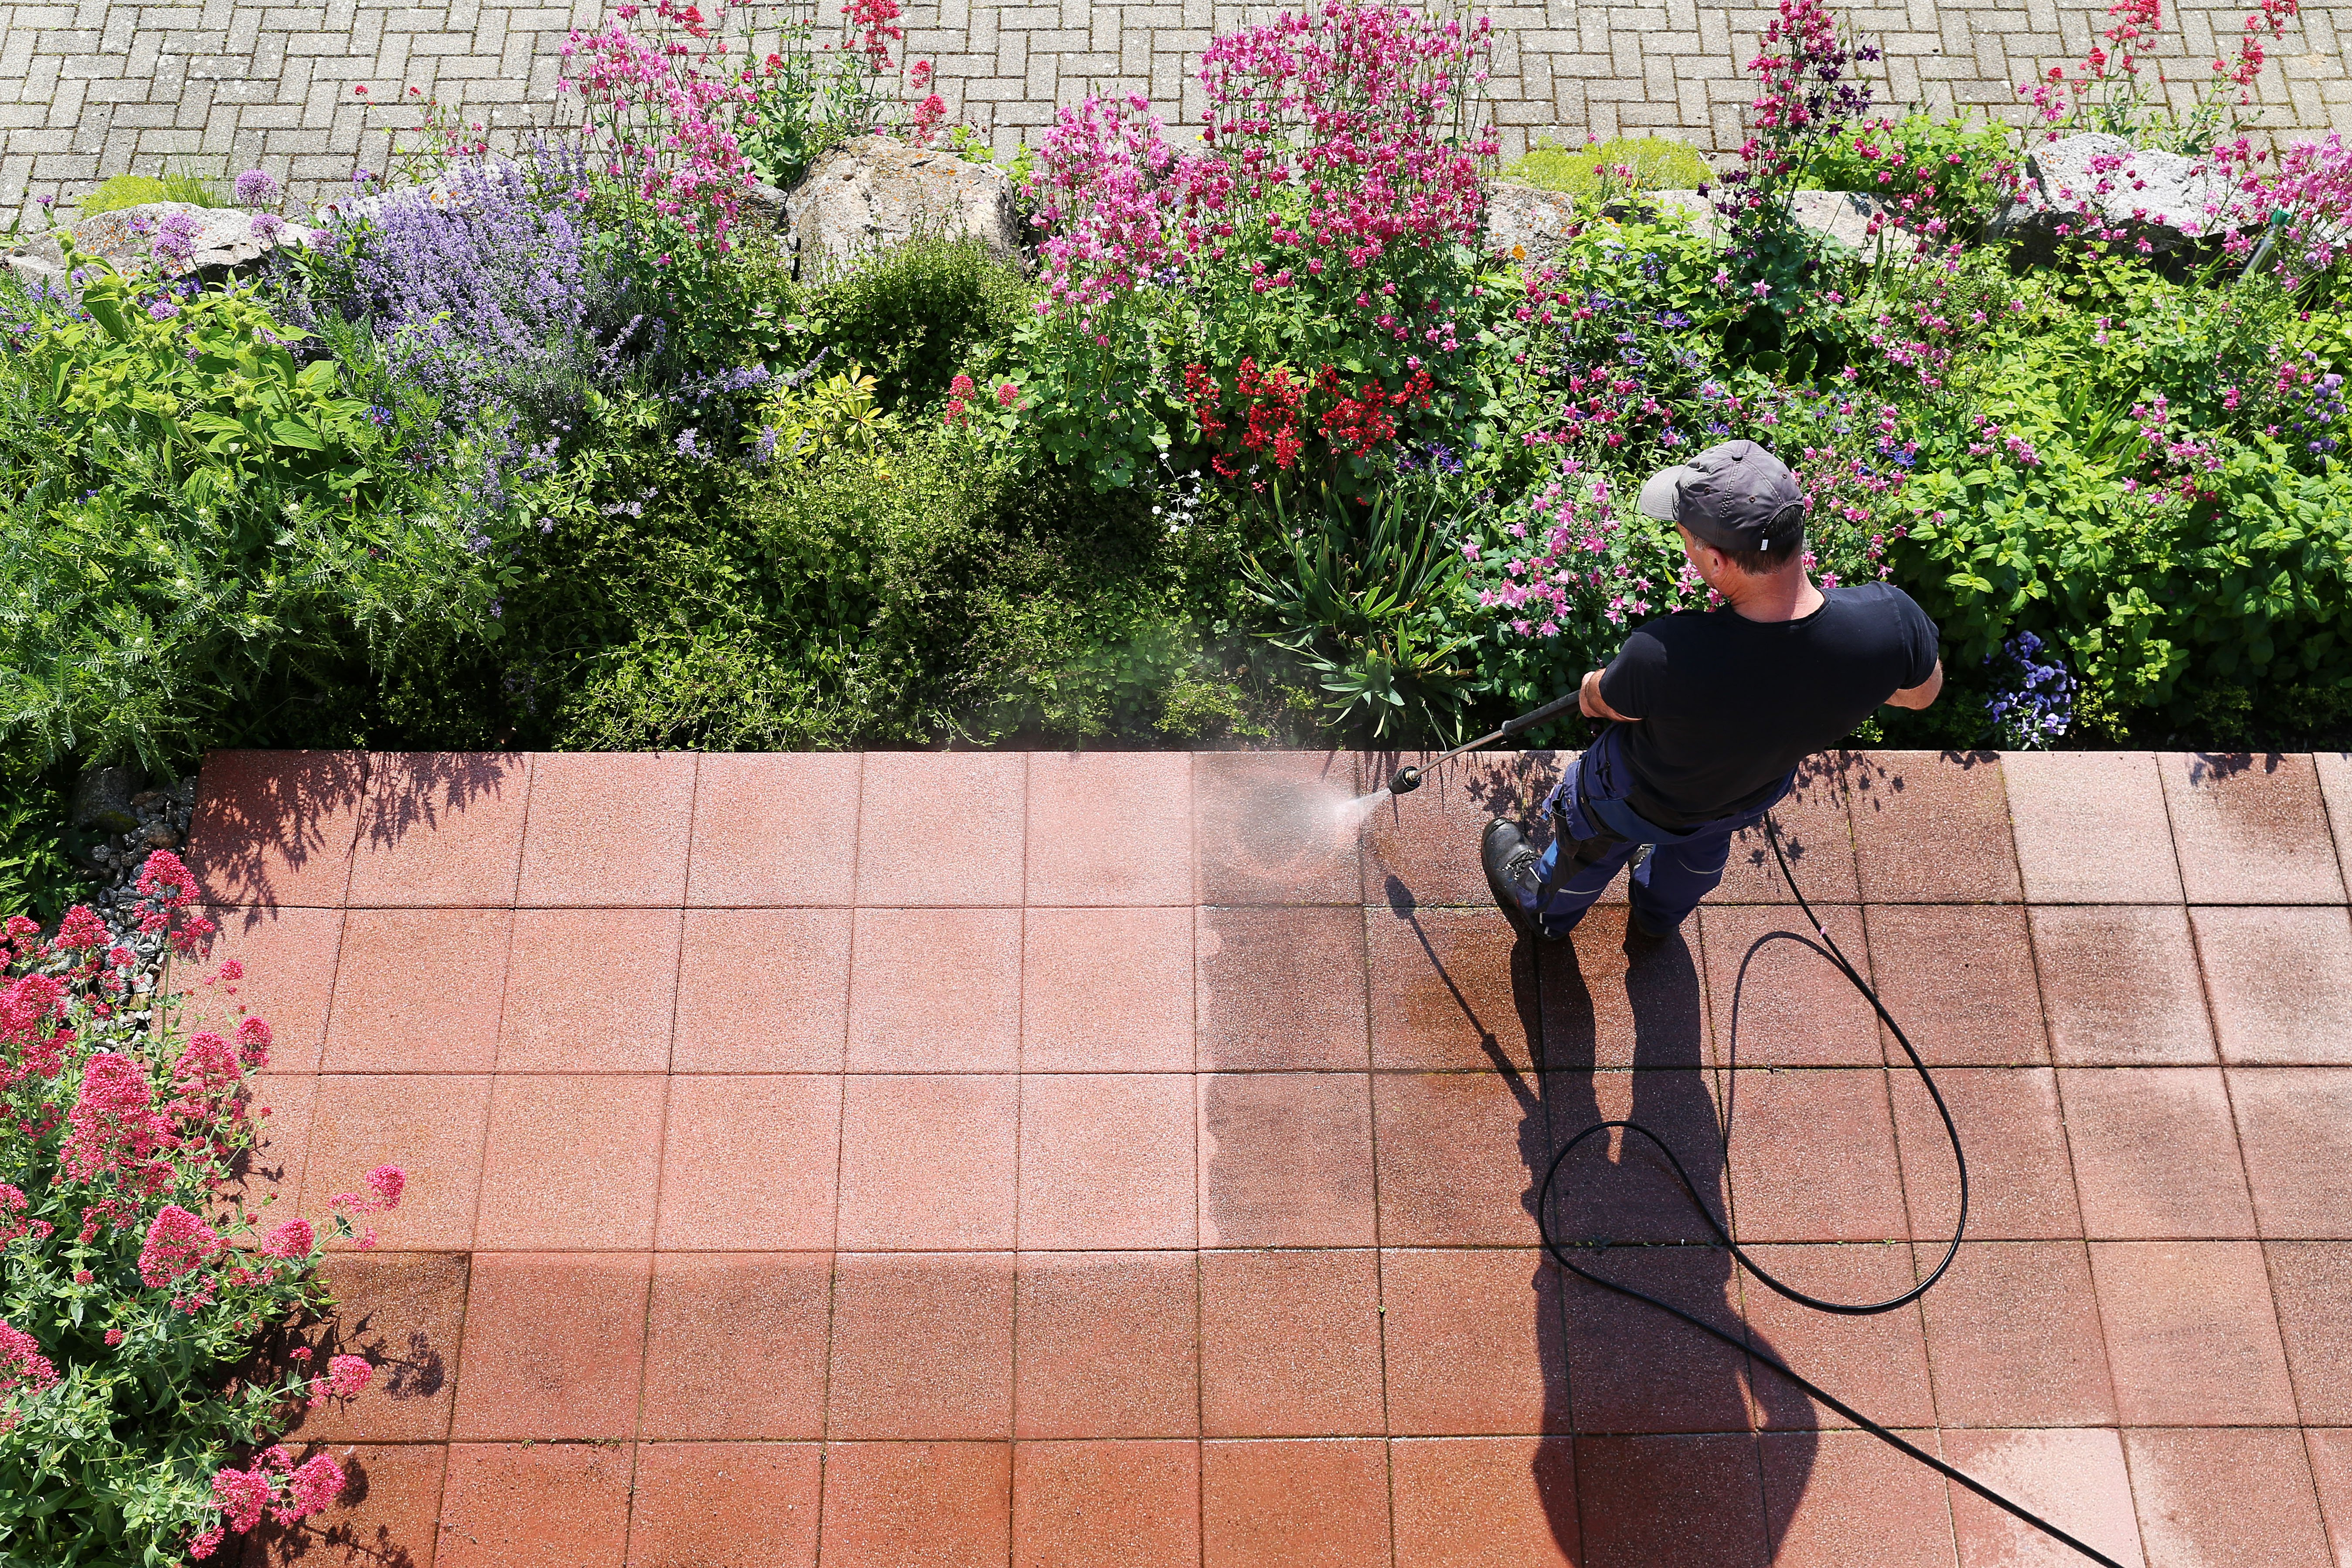 CLEANING THE GARDEN: IT'S EASIER AND QUICKER WITH A PRESSURE WASHER